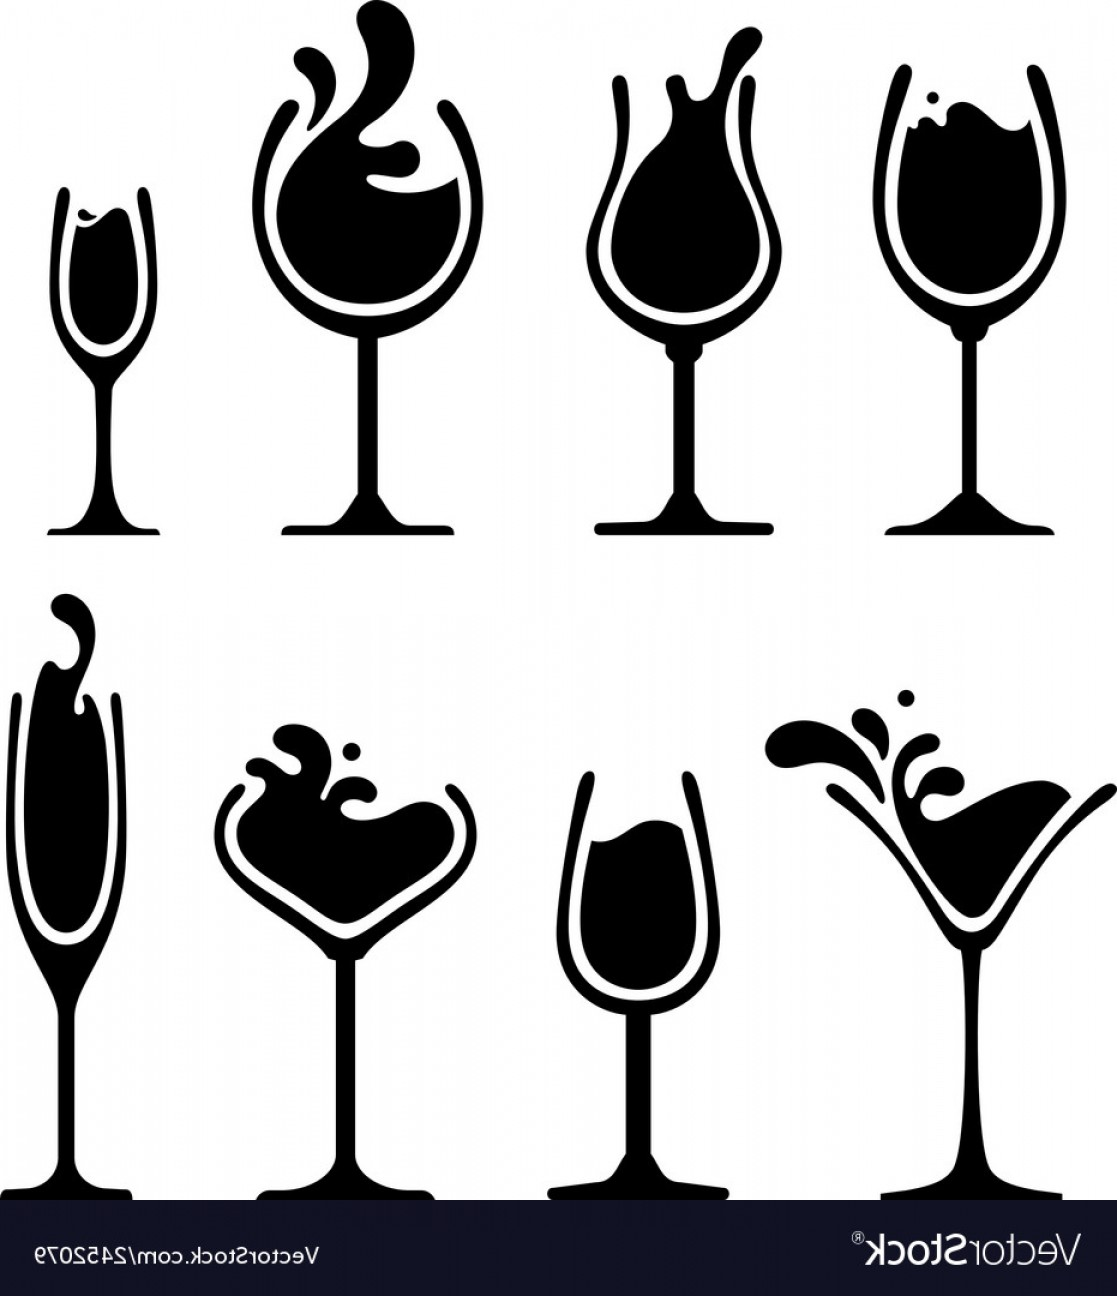 Single Wine Glass Silhouette Vector: Silhouette Of Wine Glass With Splash Vector